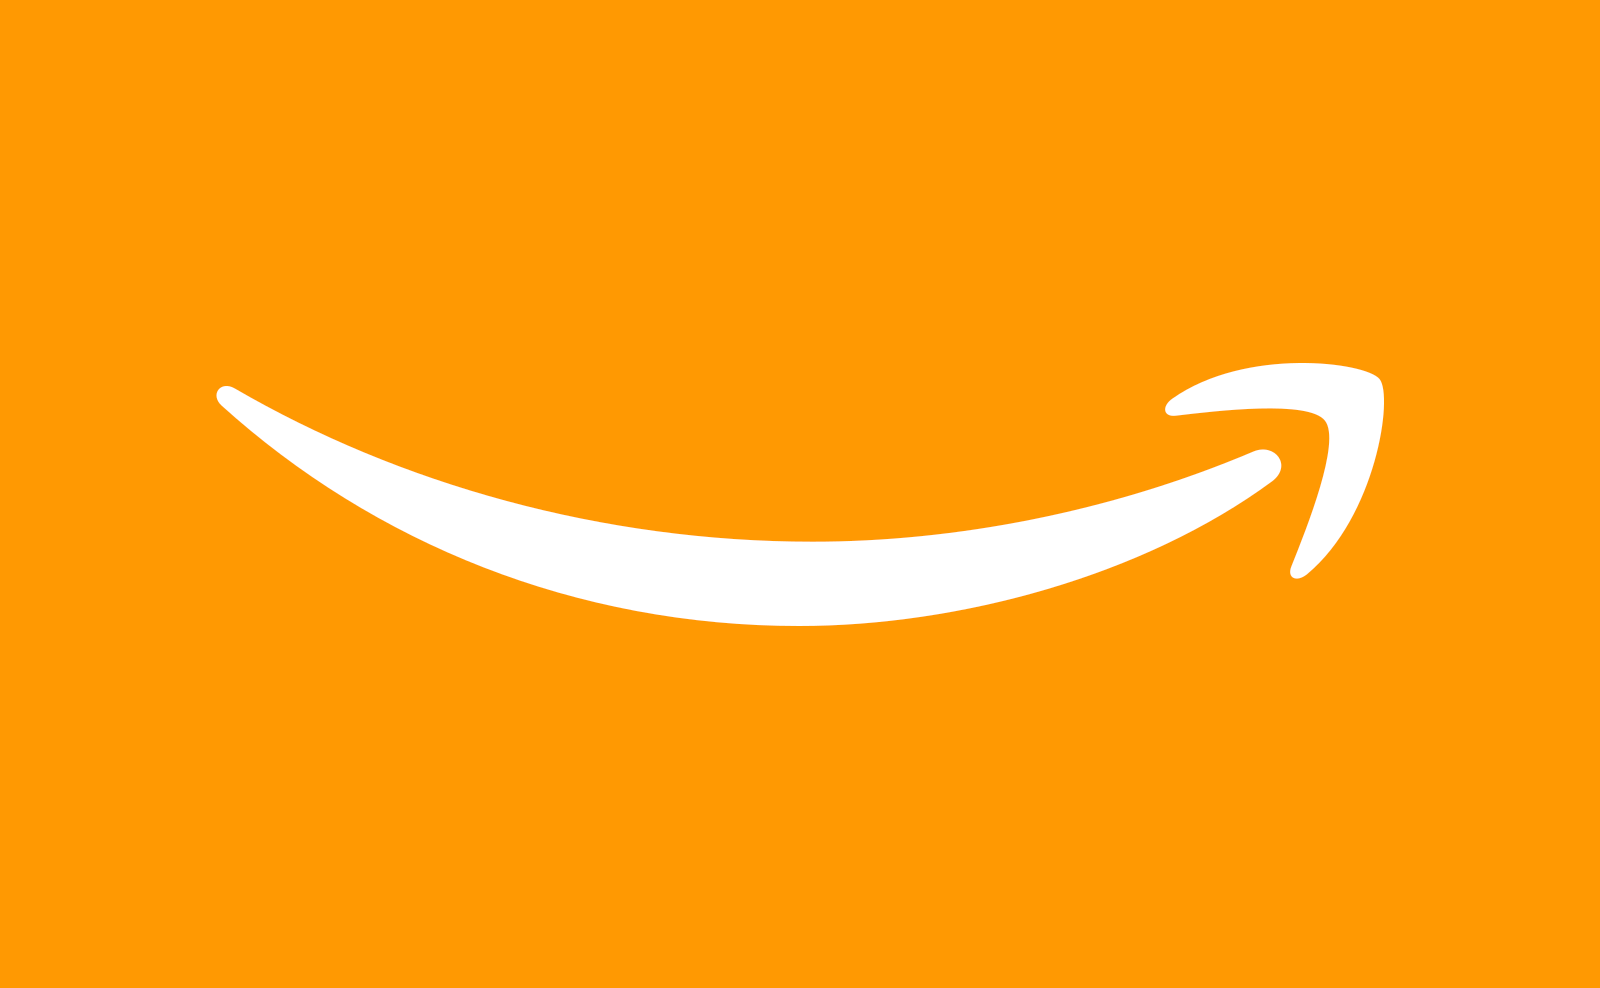 Amazon arrow logo on an orange background